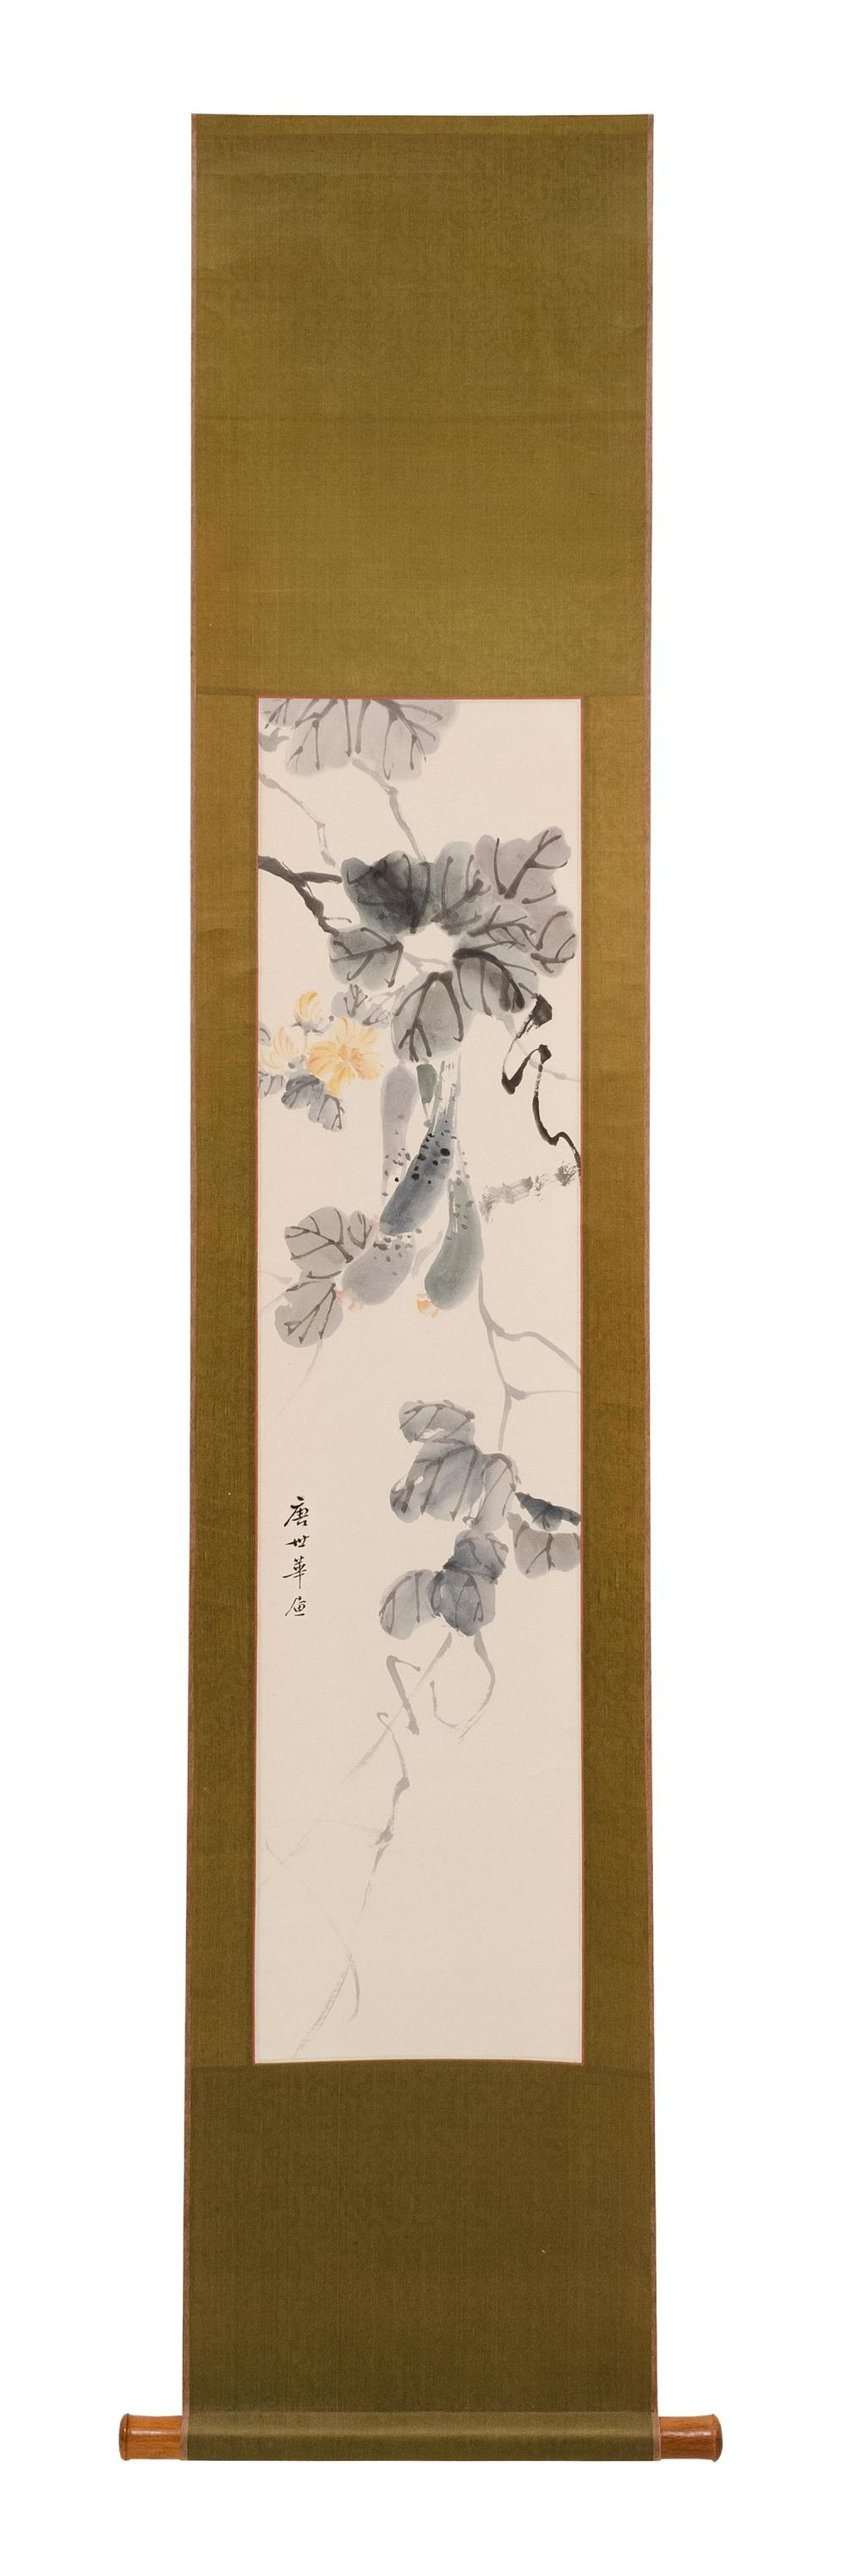 "CHINESE SCROLL PAINTING ON PAPER Depicting gourds and vines. Signed. 40"" x 9.5""."